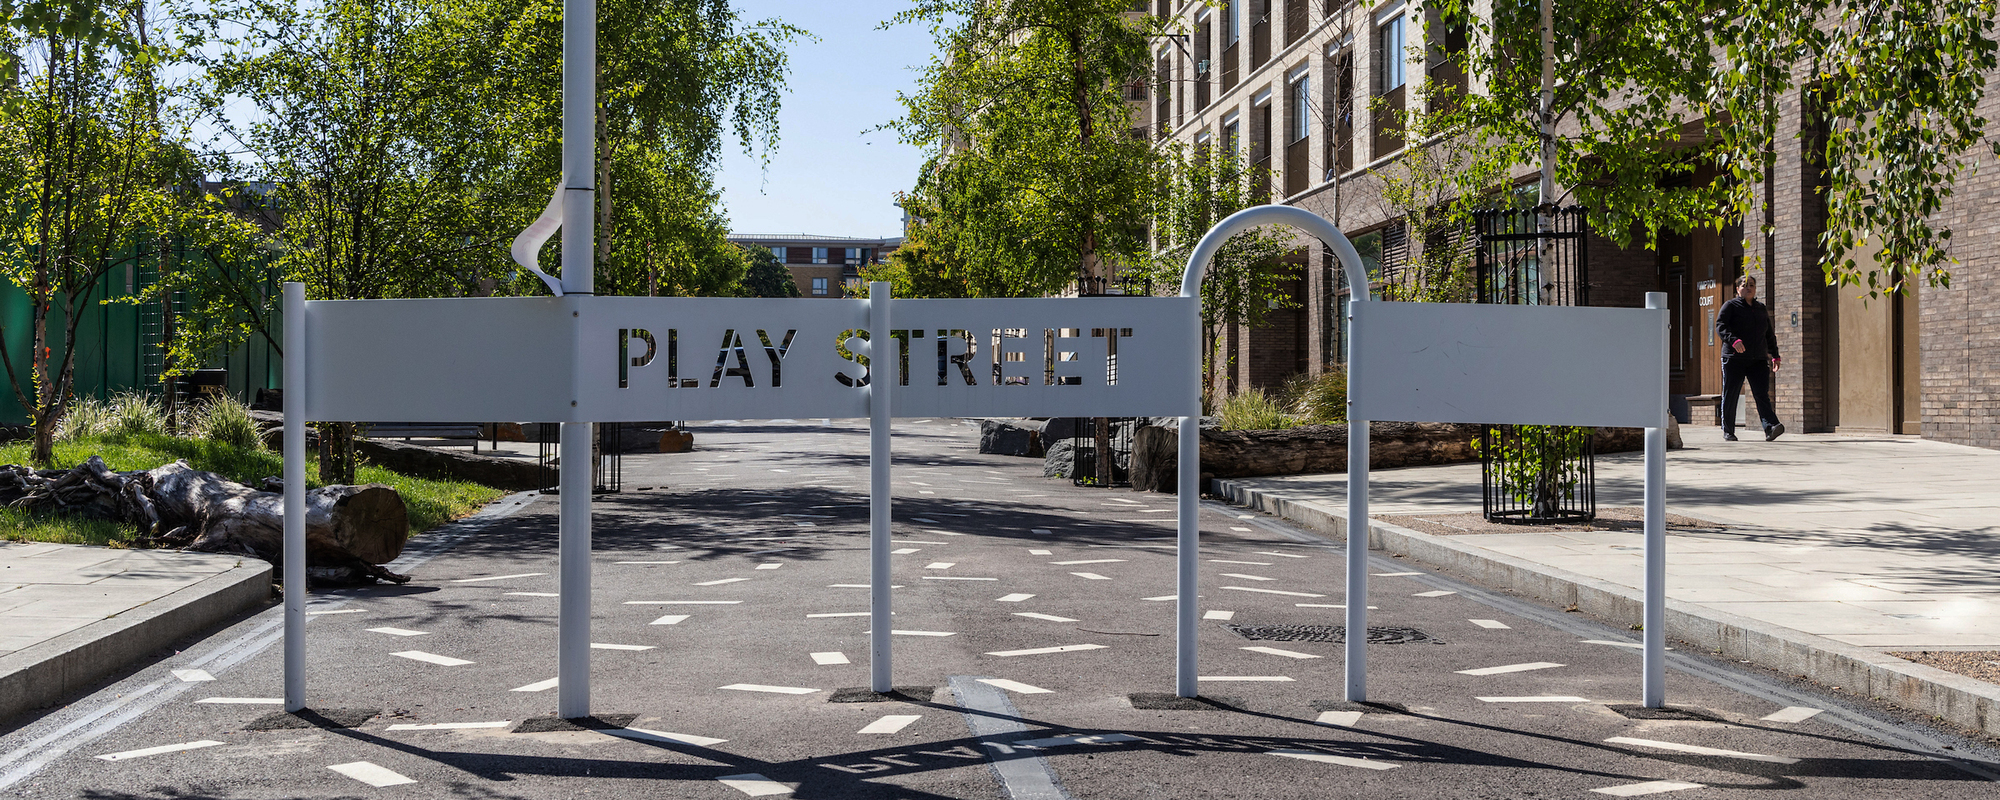 Play Street in Kings Crescent Estate, Hackney. Photo: John Sturrock